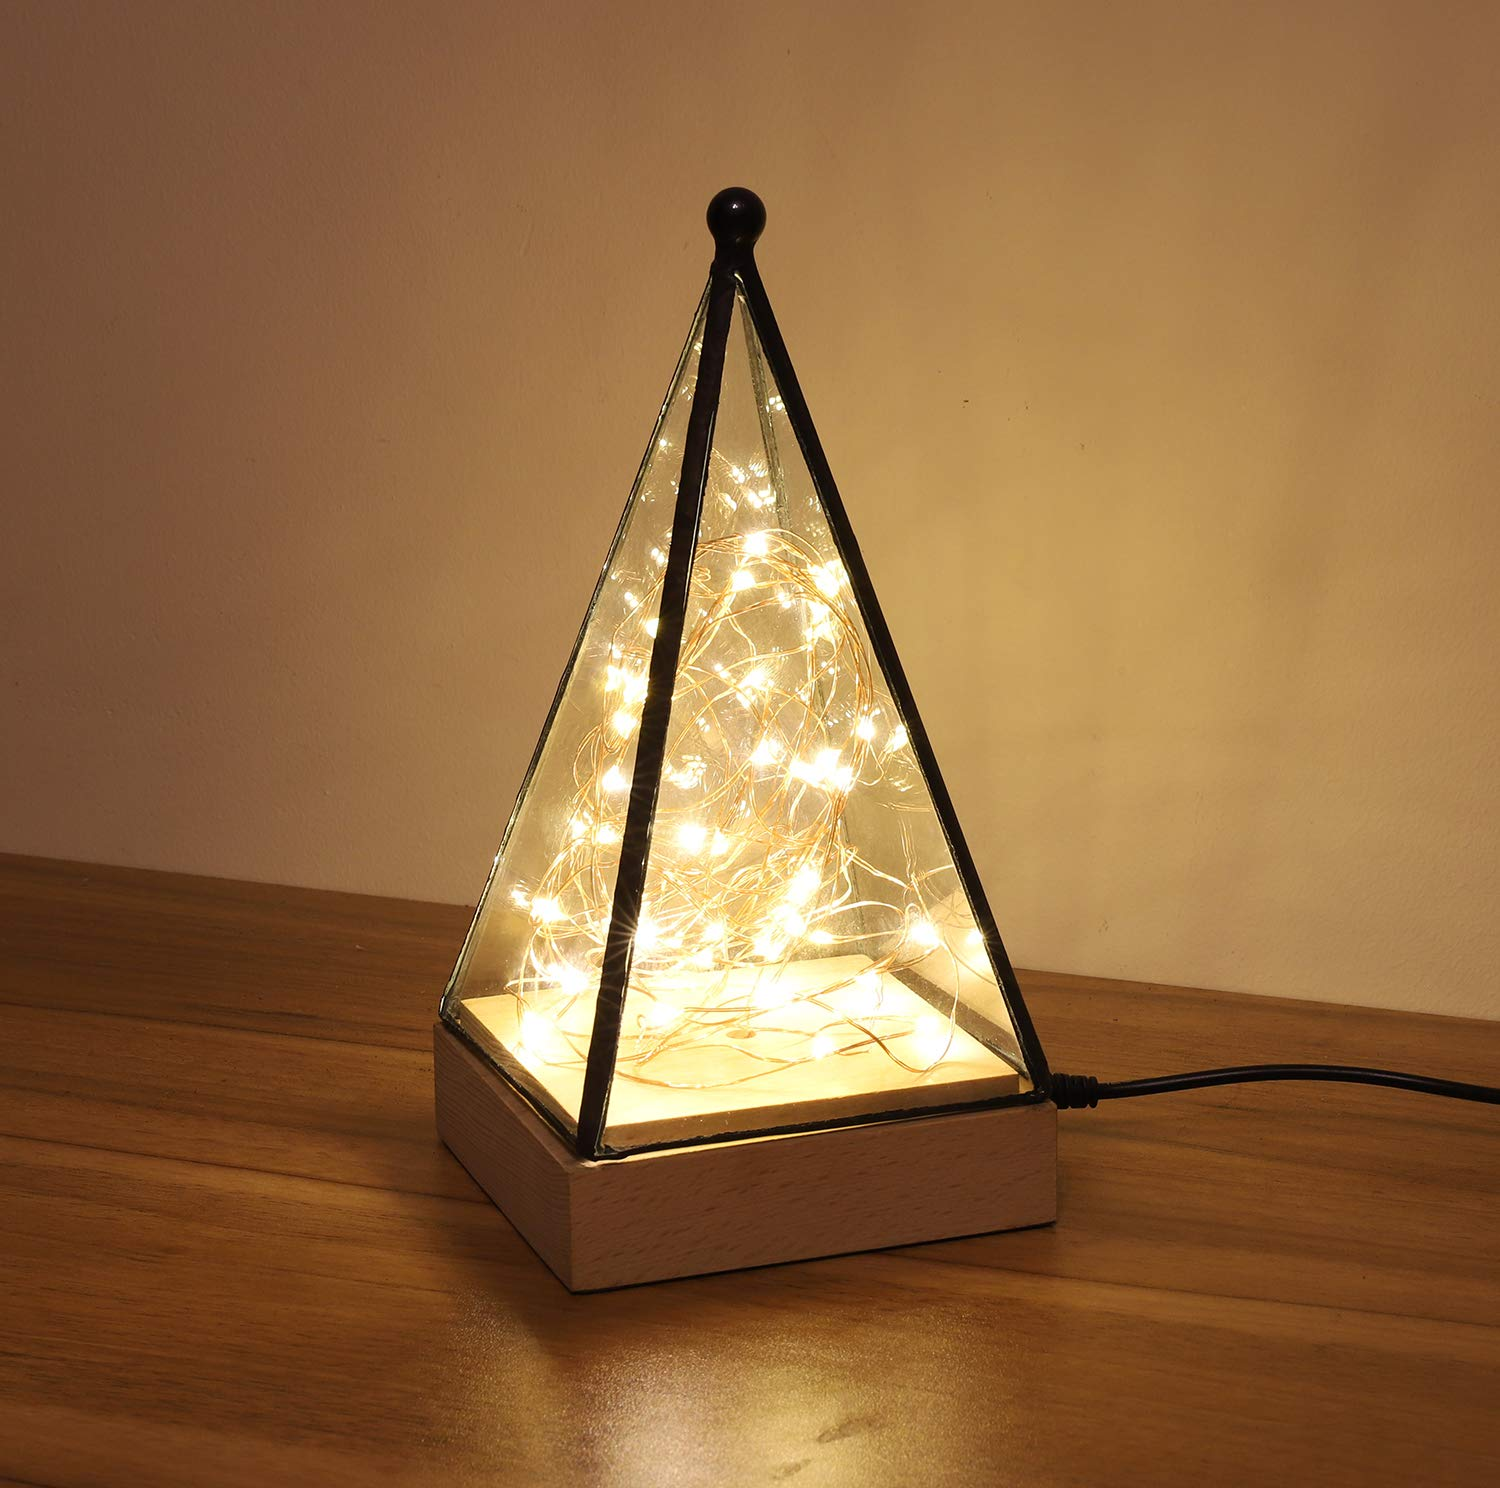 Night Light Lamp LED, Decorative Lamp For Bedroom and Living Room Fairy String Lights Warm White For Girls